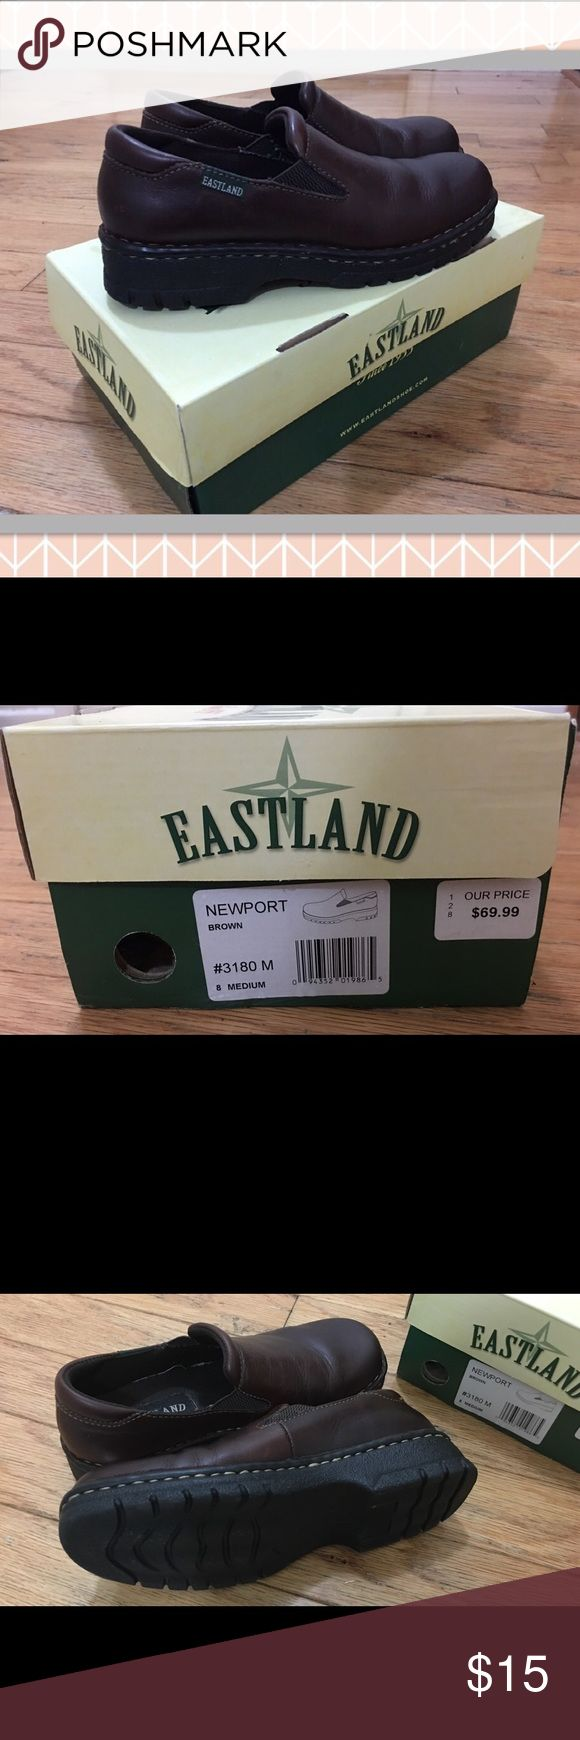 Eastland Newport Shoes Eastland Newport Shoes. All Leather. Very Good condition. Eastland Shoes Flats & Loafers